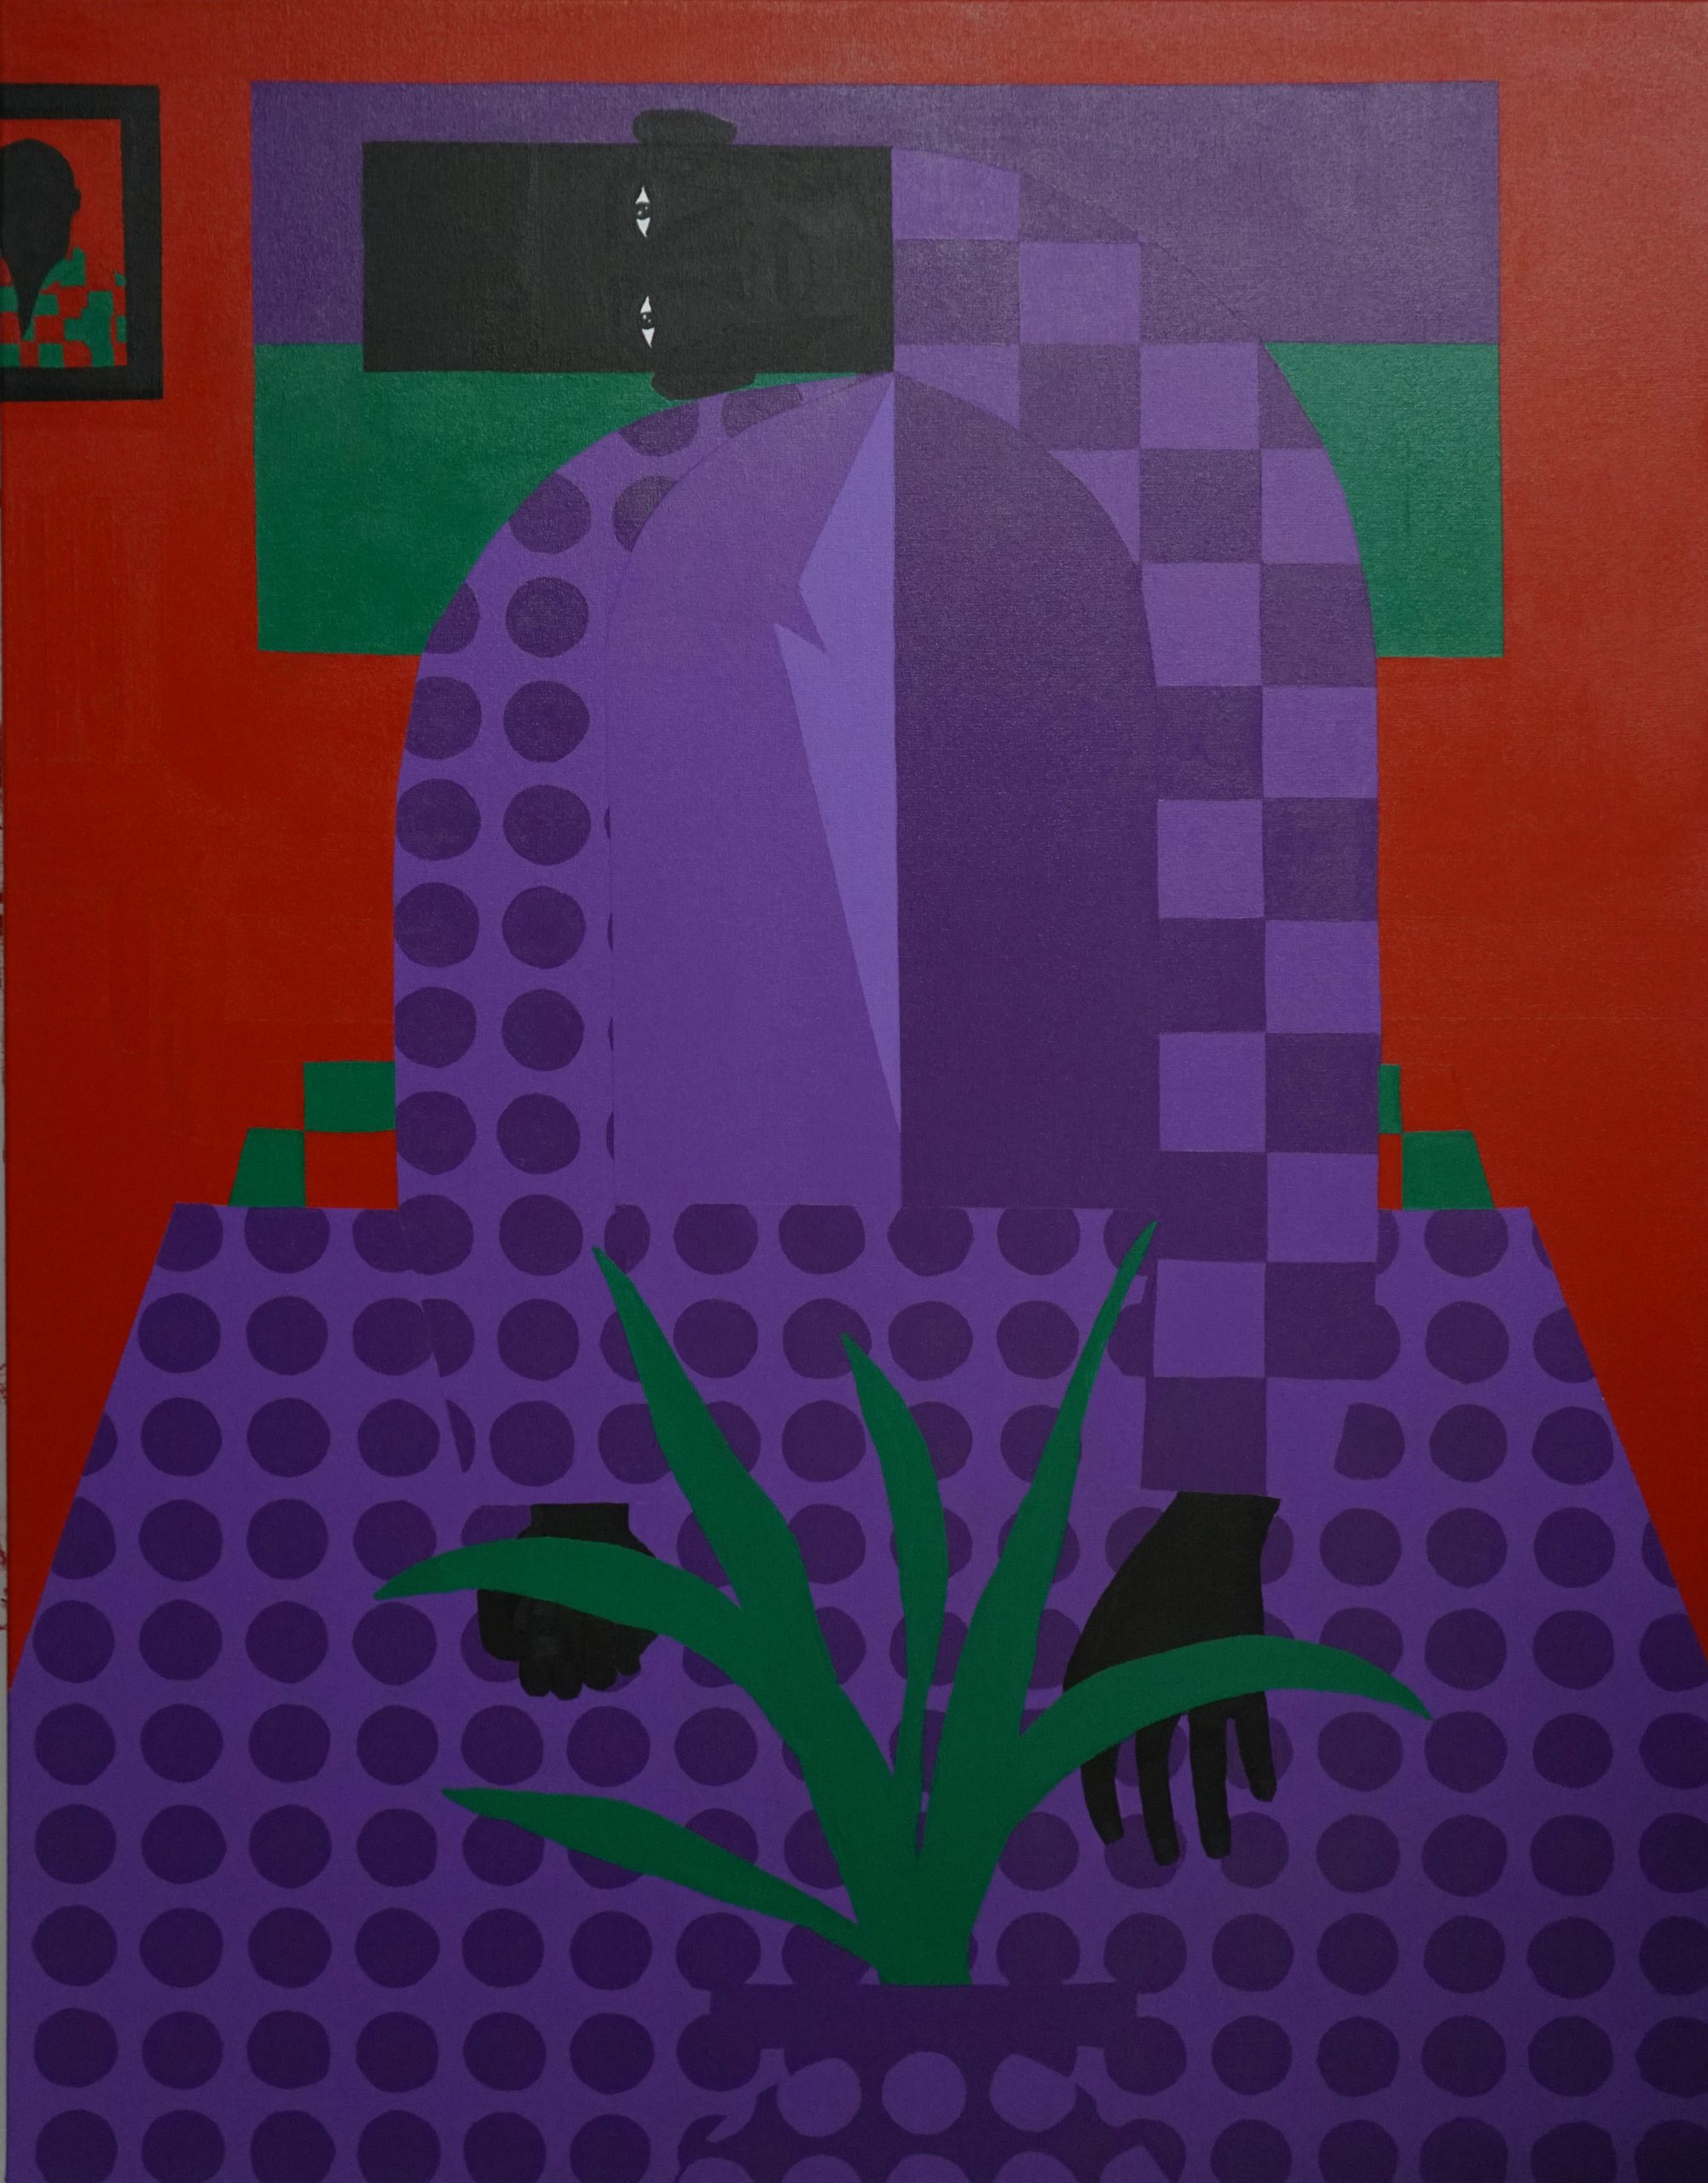 Jon Key.<em> The Man in the Red Room No. 3</em>, 2019. Acrylic on canvas, 48 x 36 inches (121.9 x 91.4 cm)